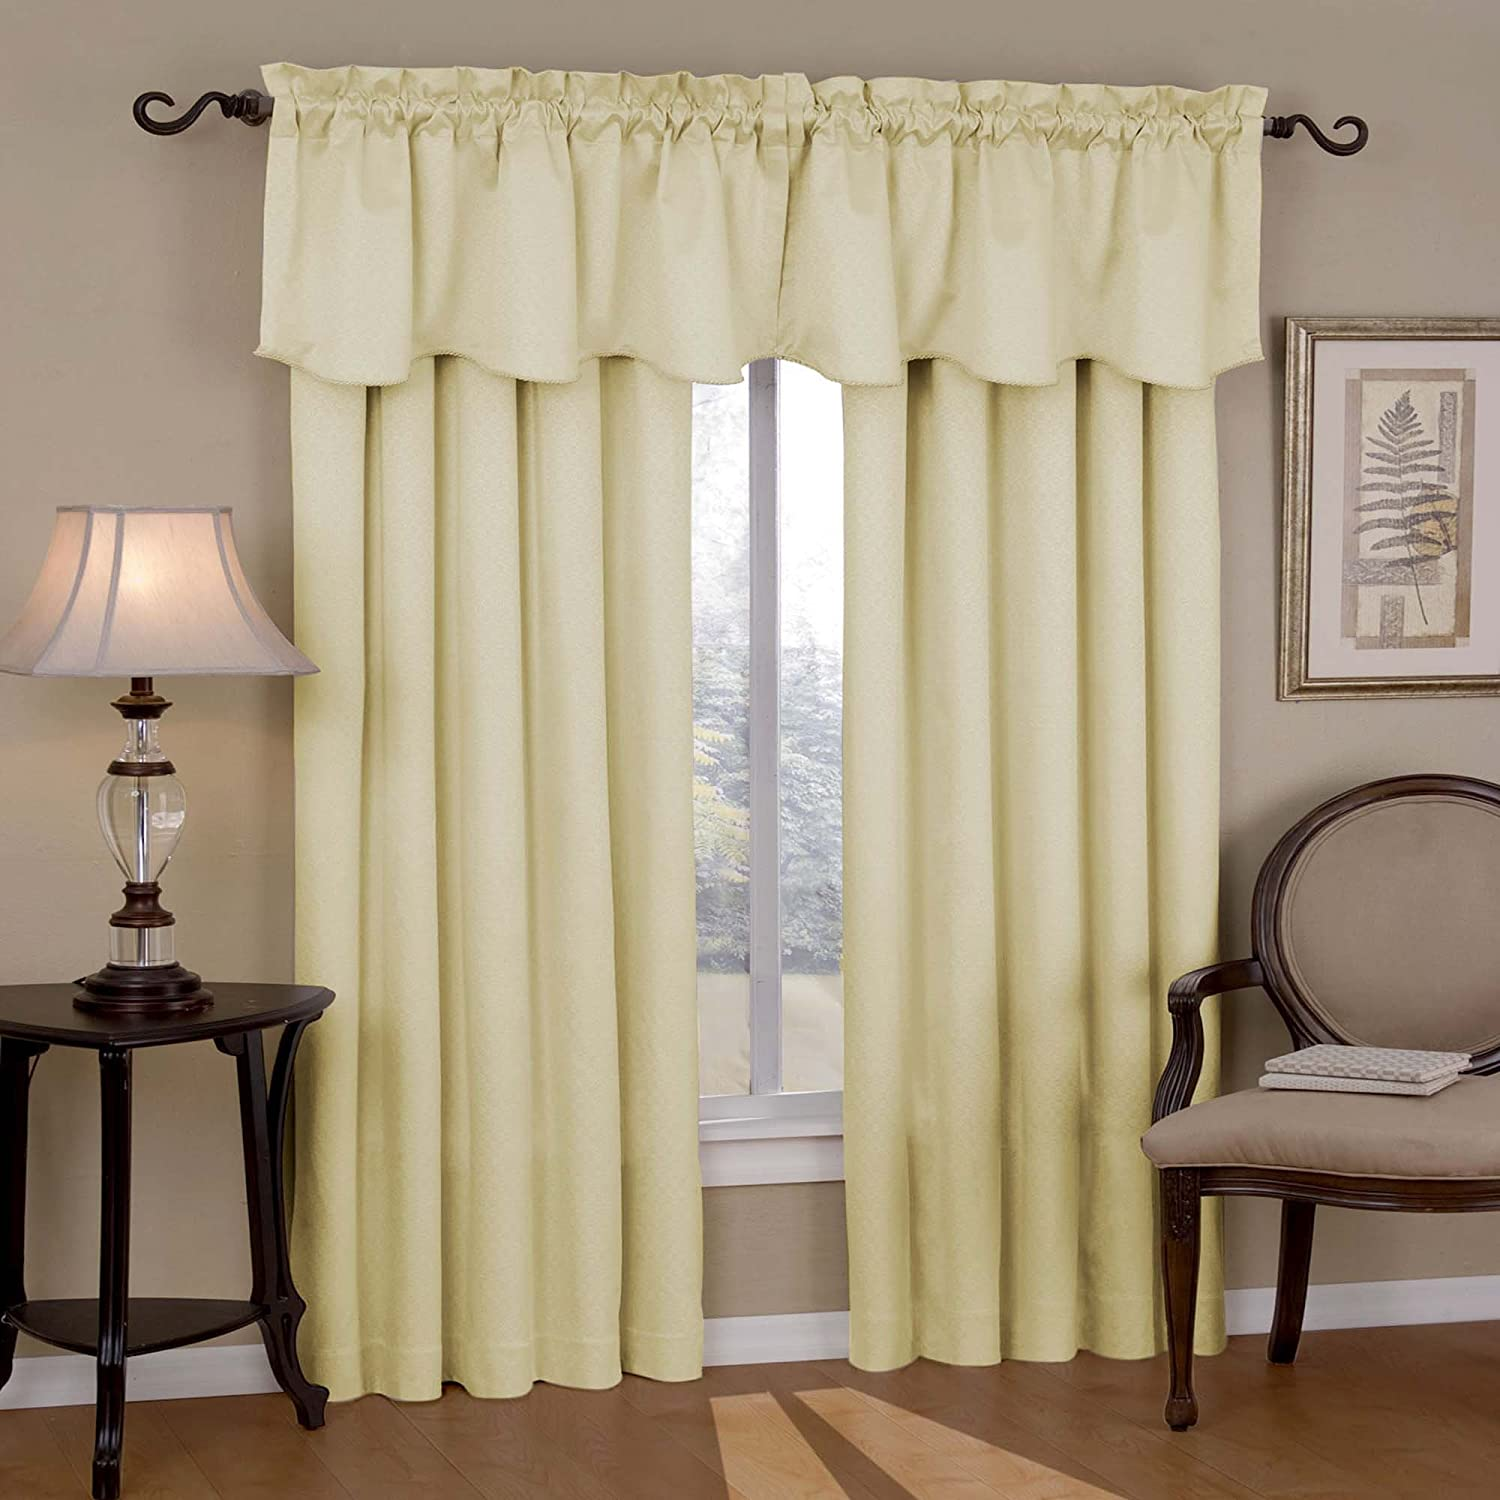 full design beautiful sale swags all and inspirations size york drapes for unusual curtains living home images curtain also in of incredible valances new ideas about room